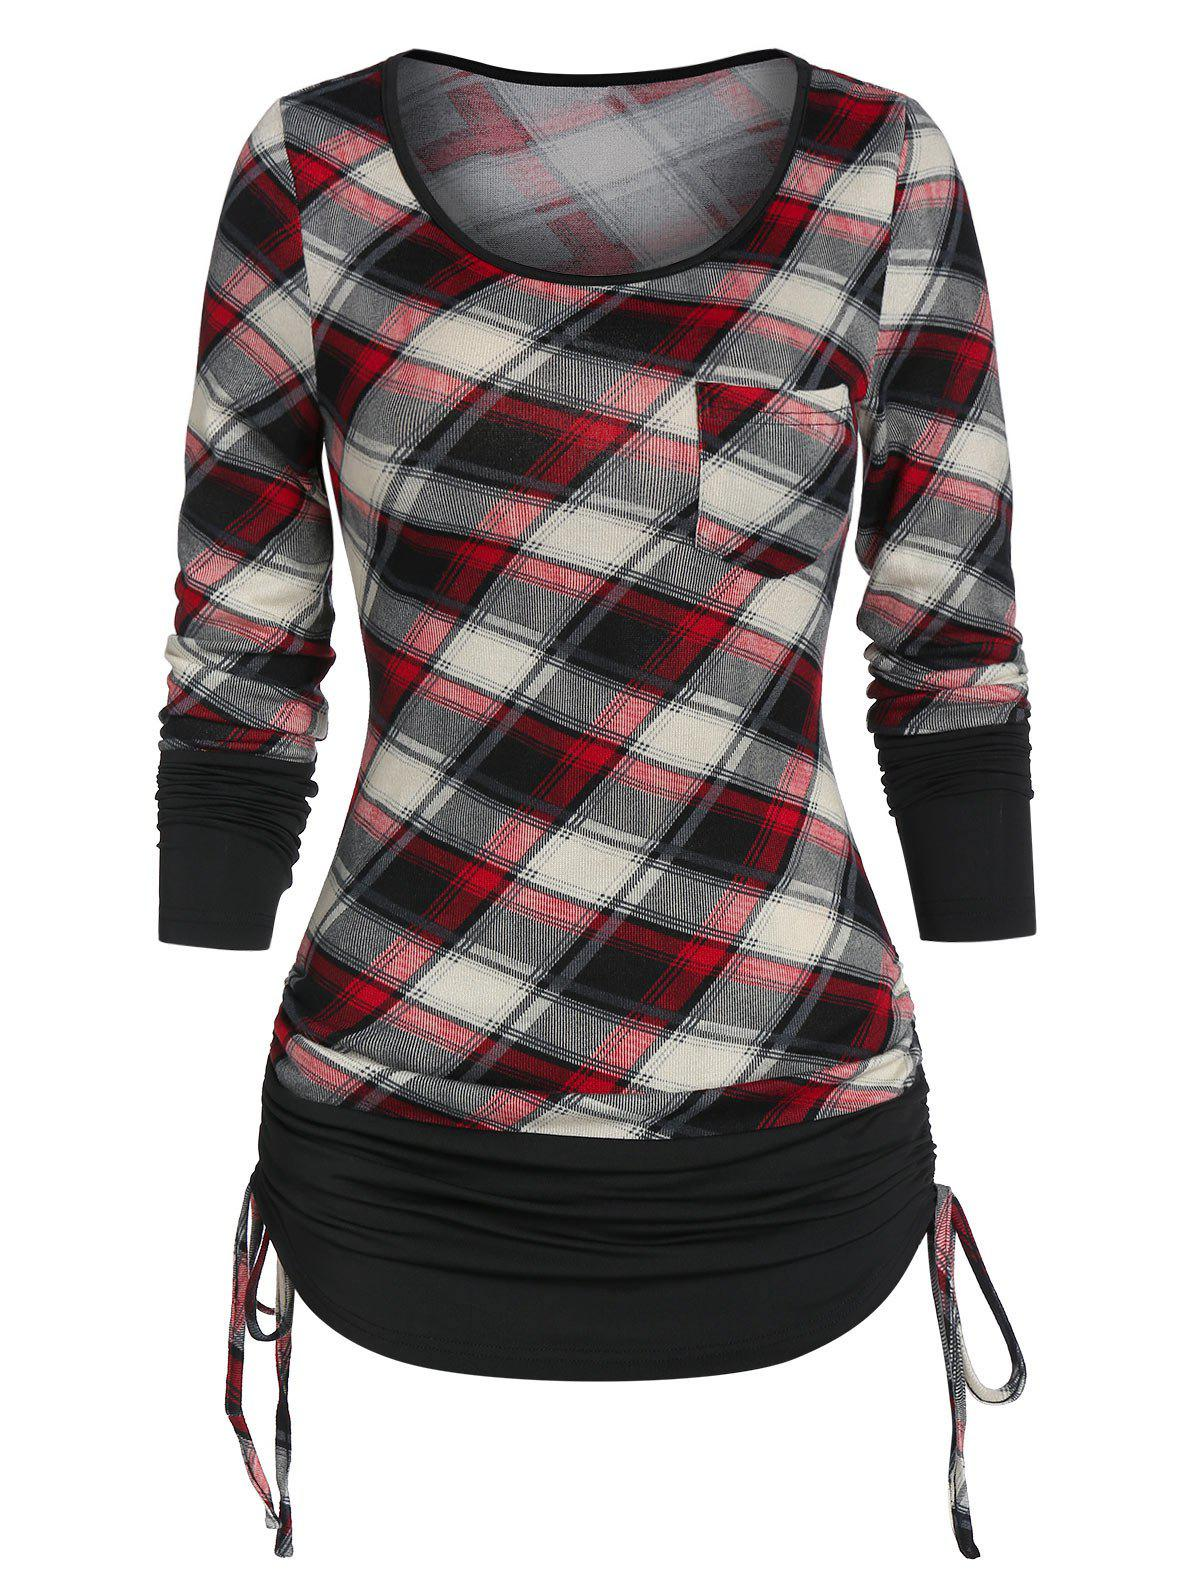 New Ruched Plaid Cinched T Shirt